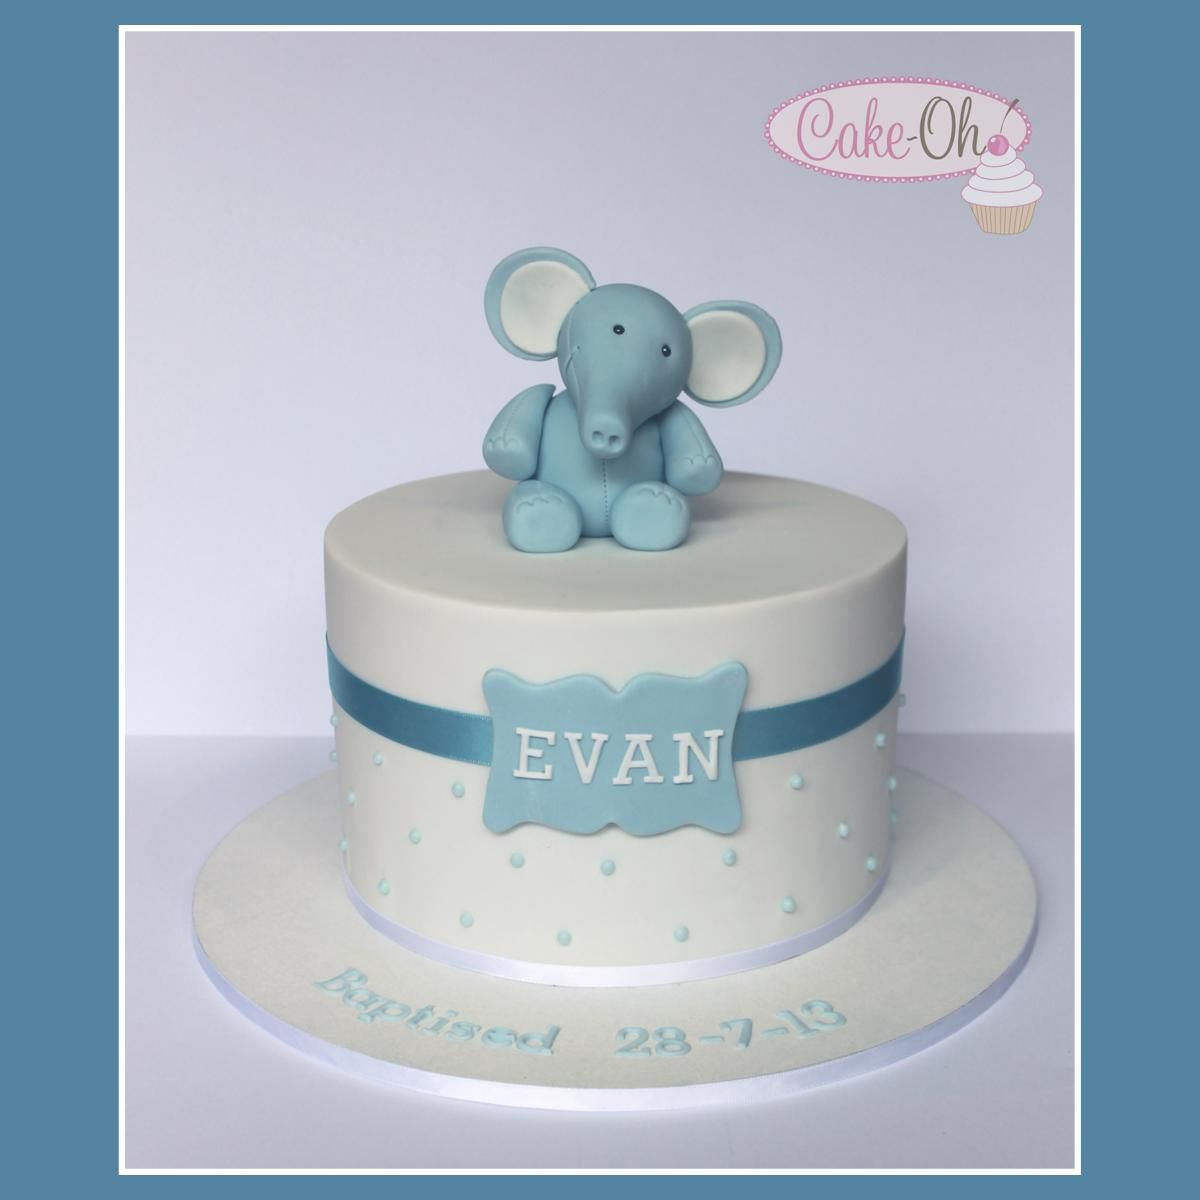 Pin By Tracy Warncken On Cake Oh Christening Cake Boy Baptism Cake Boy Baby Boy Christening Cake